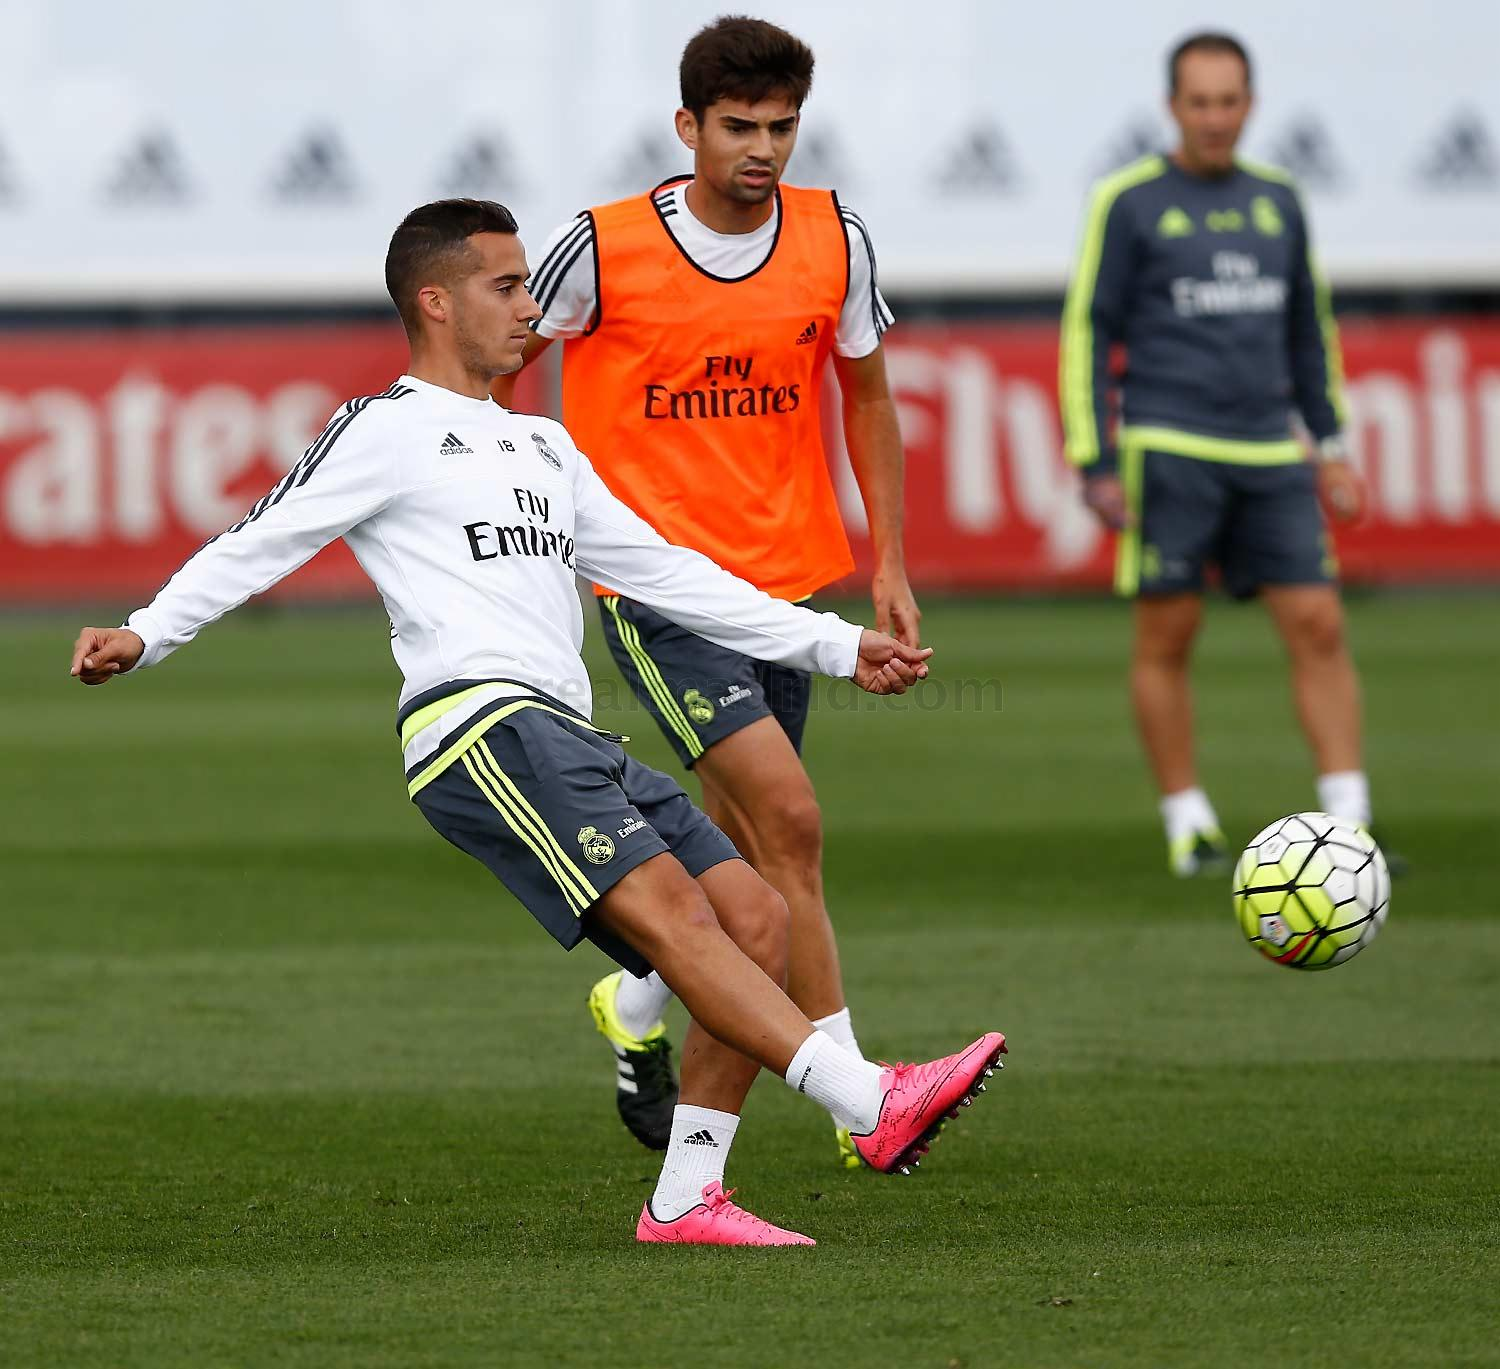 Real Madrid - Entrenamiento del Real Madrid - 16-09-2015